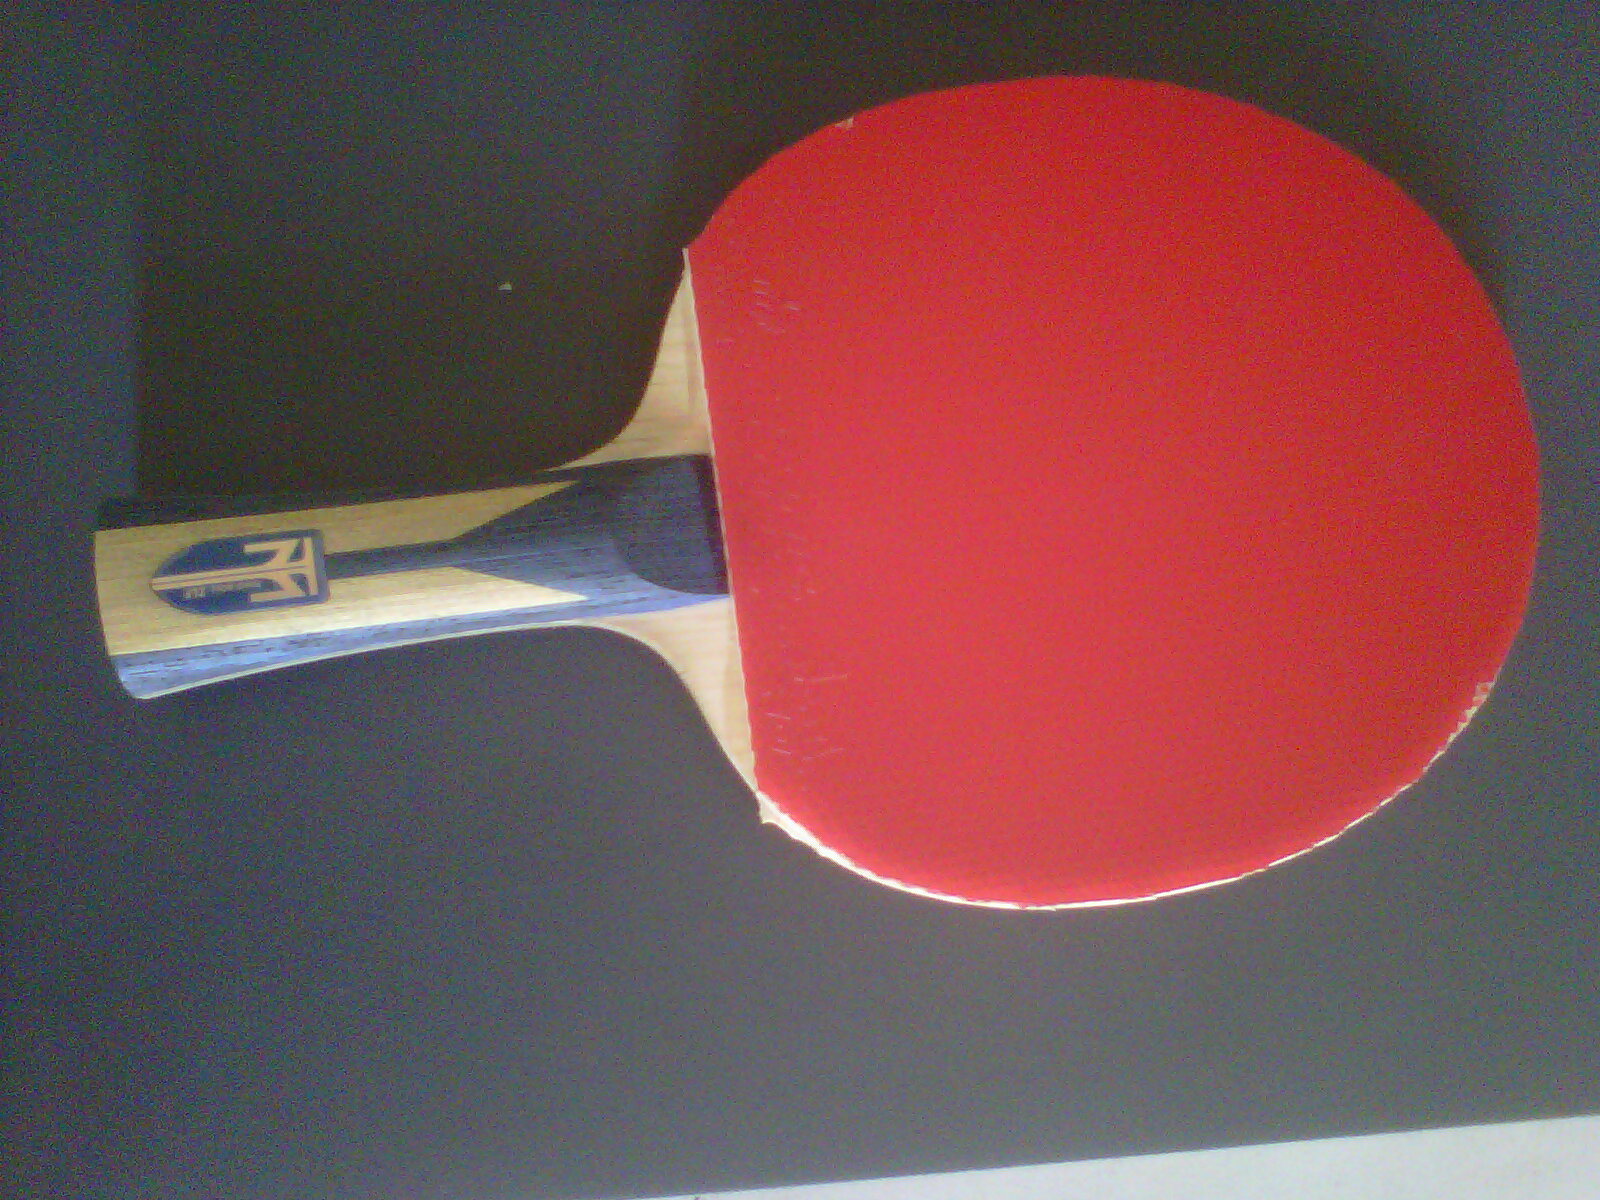 Almost Brand New Timo Boll Zlf Rakza 7 Coppa Alex